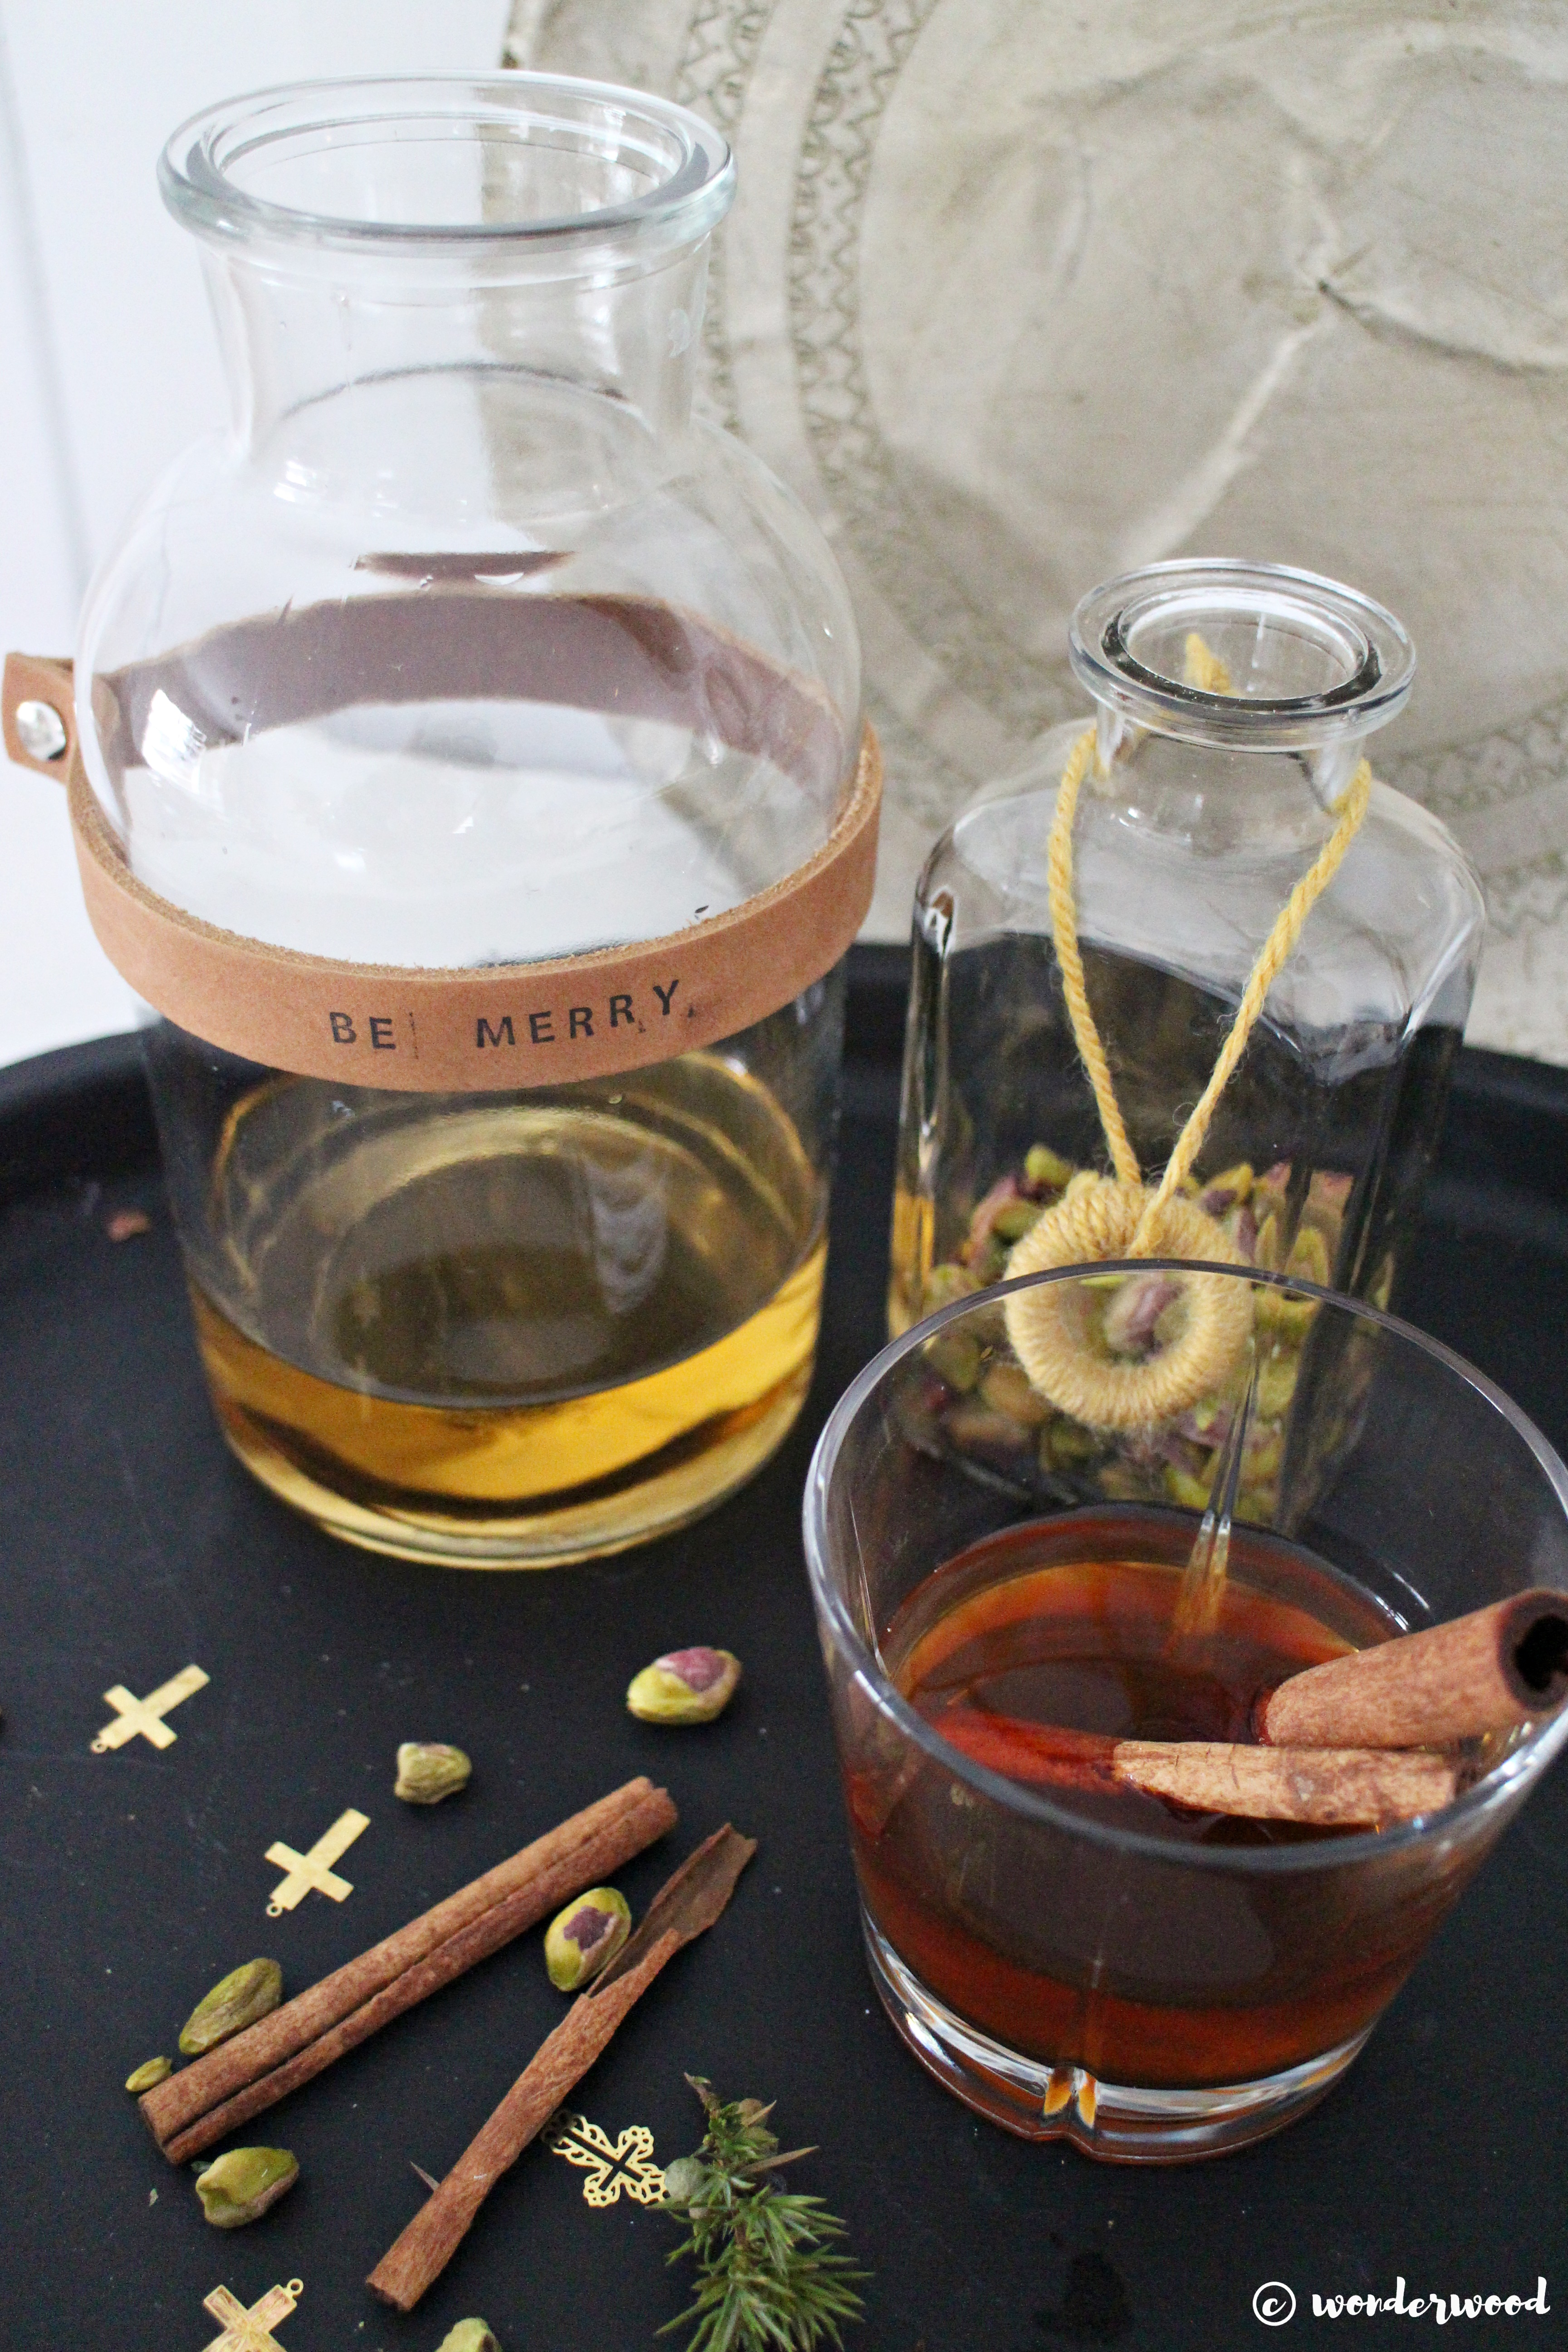 Tips til hjemmelagde julegaver 7: diy karaffel med skinn // Homemade Christmas gift ideas 7: diy leather tag carafe